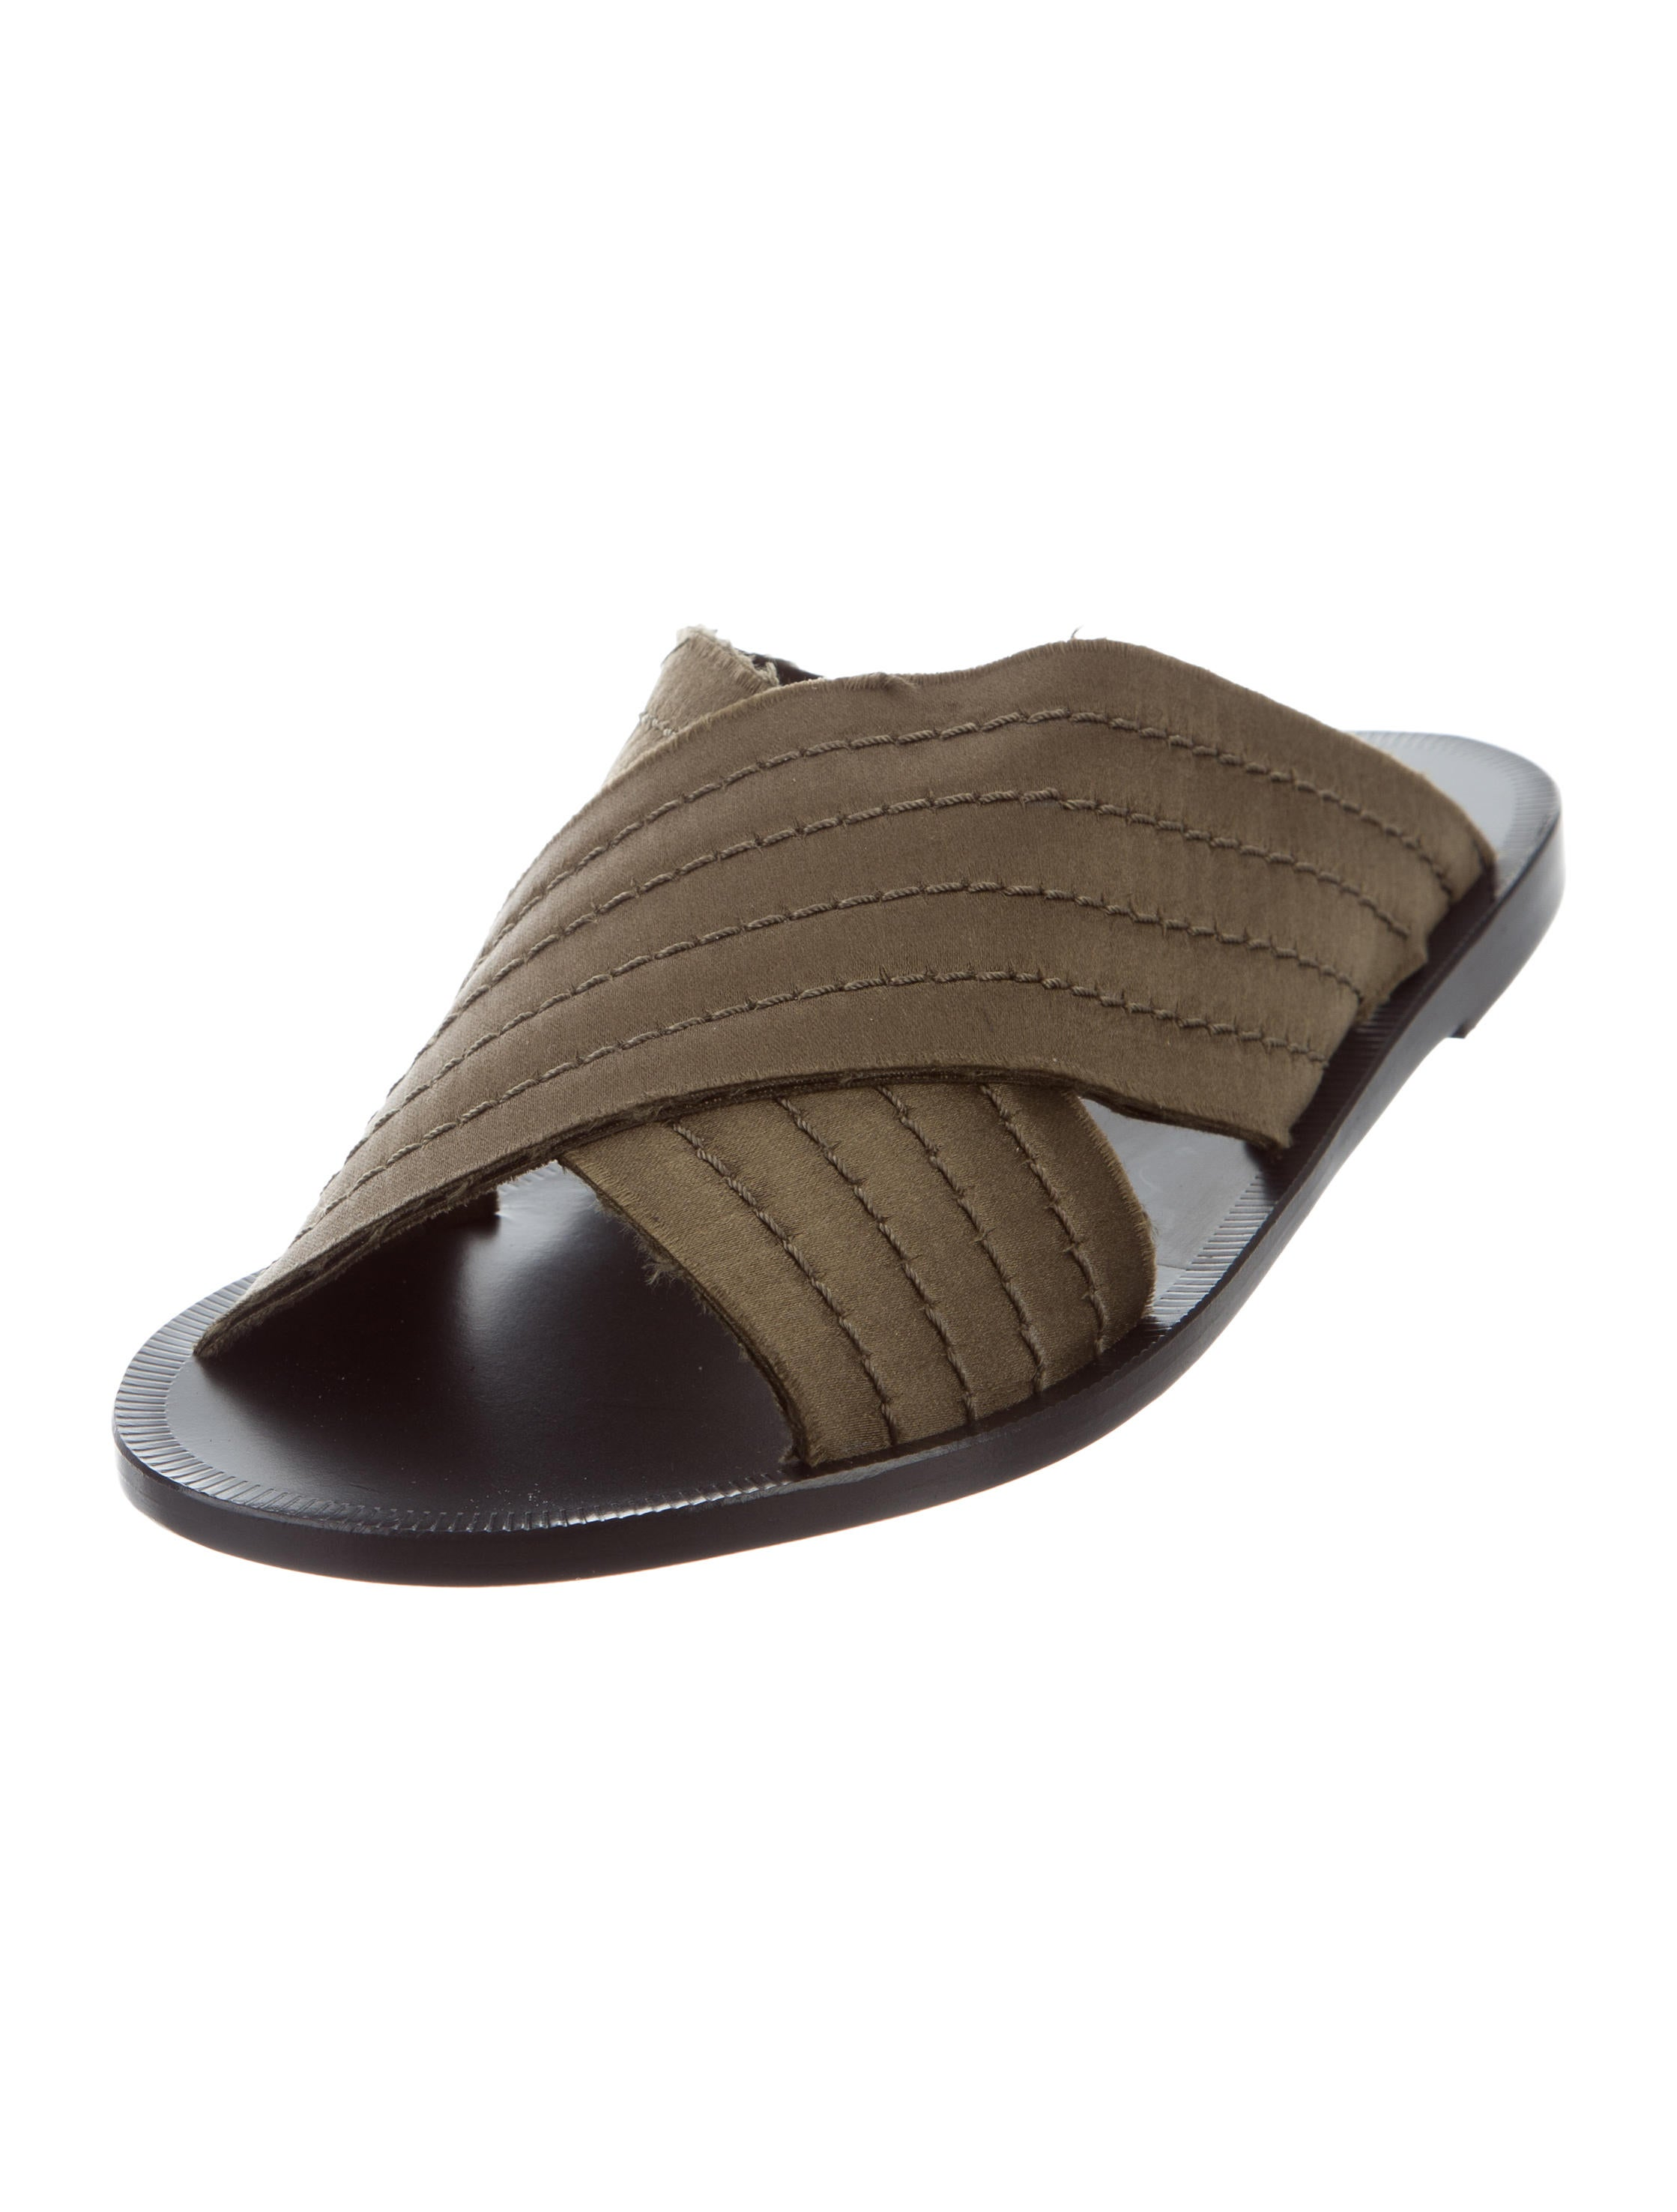 Pedro Garcia Zissi Slide Sandals w/ Tags outlet buy sale prices cheap new free shipping 100% original UypbRIZX